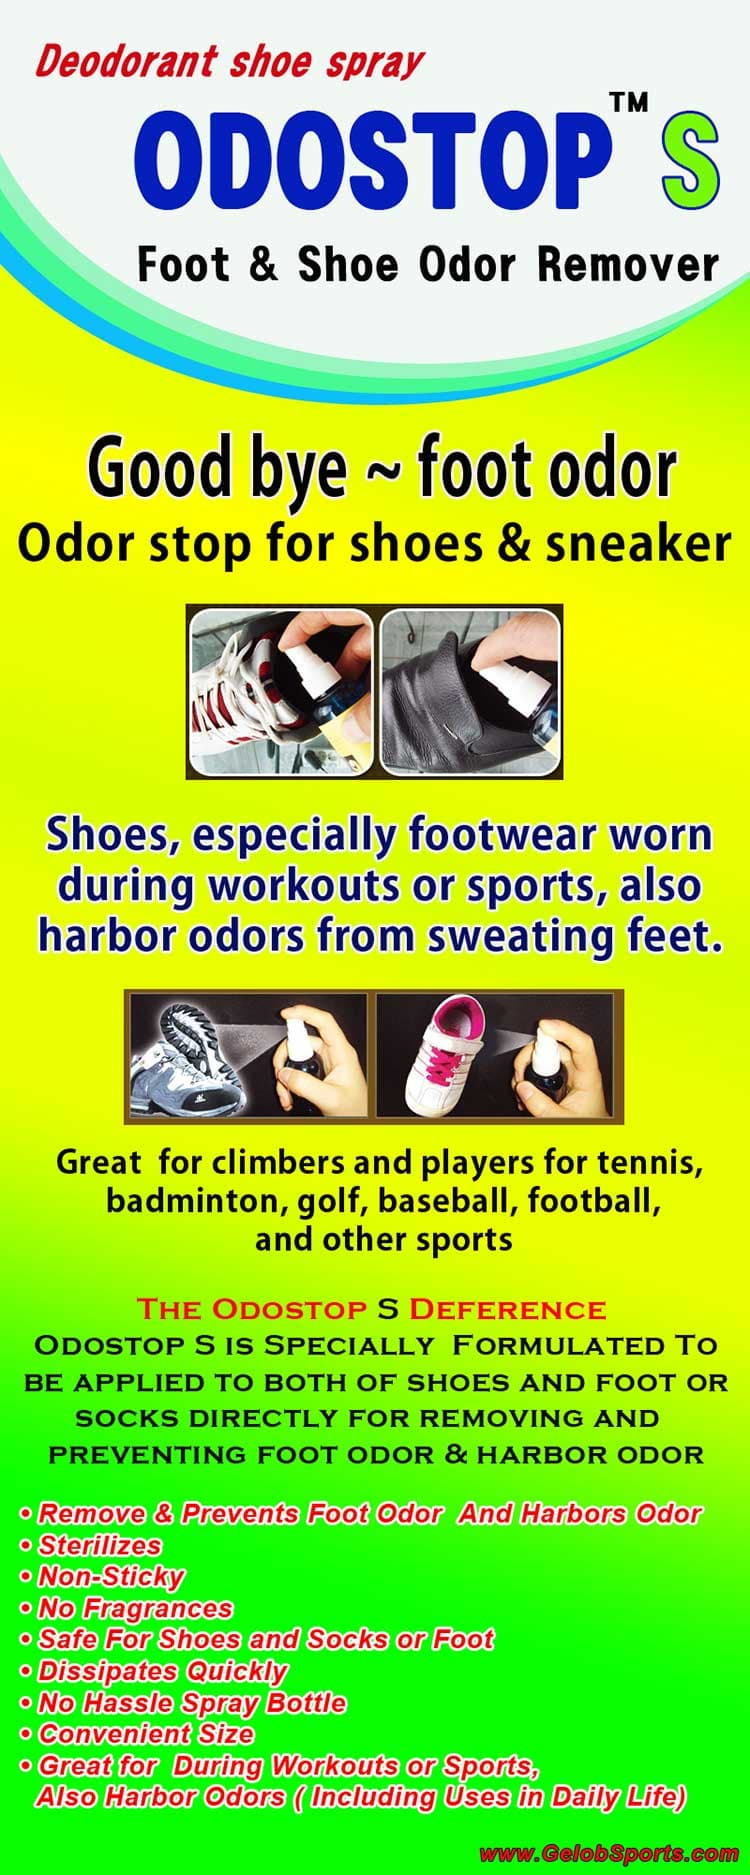 Sports Deodorants for foot odor _ODOSTOP S_